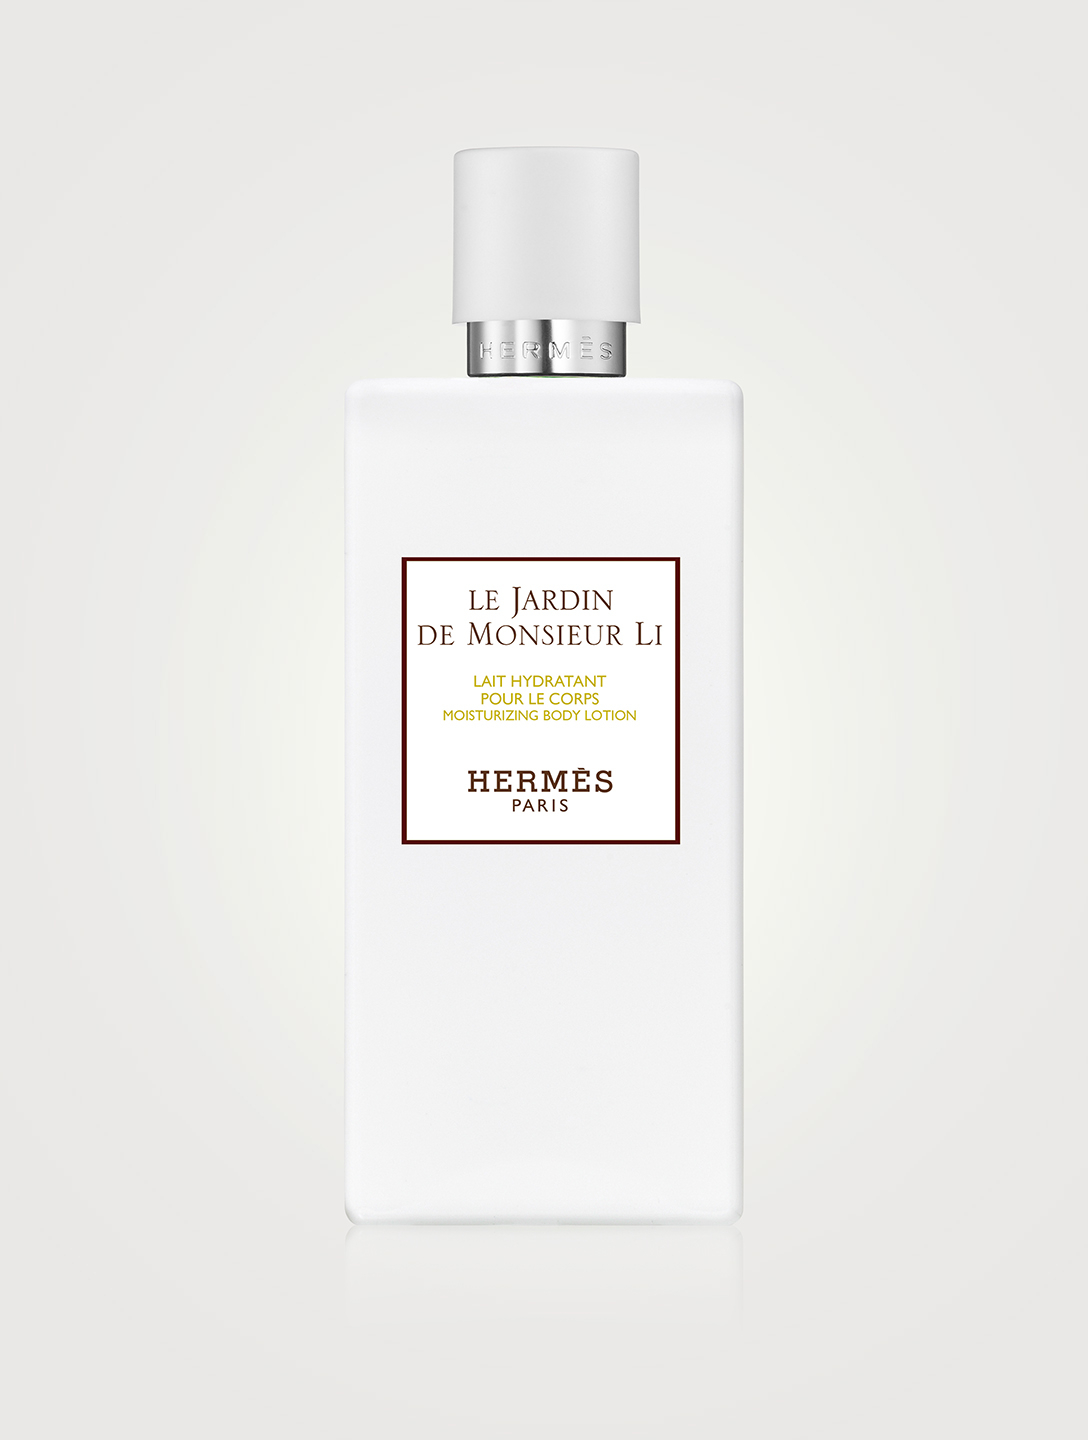 HERMÈS Le Jardin de Monsieur Li Moisturizing Body Lotion Beauty